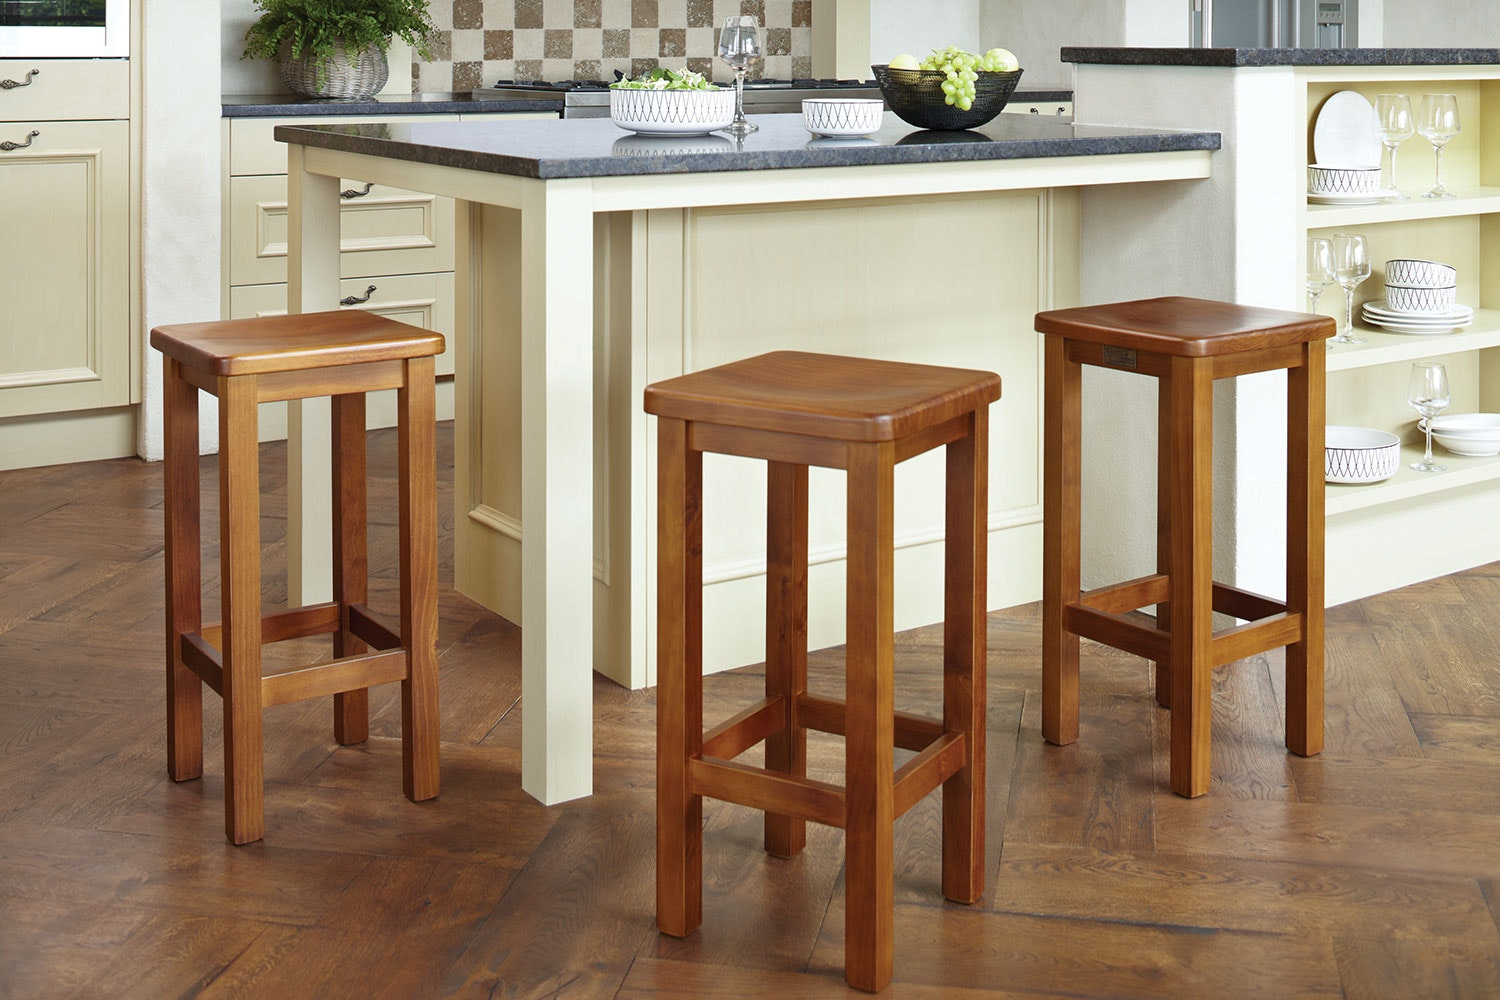 Ferngrove Dish Seat Bar Stool by Coastwood Furniture